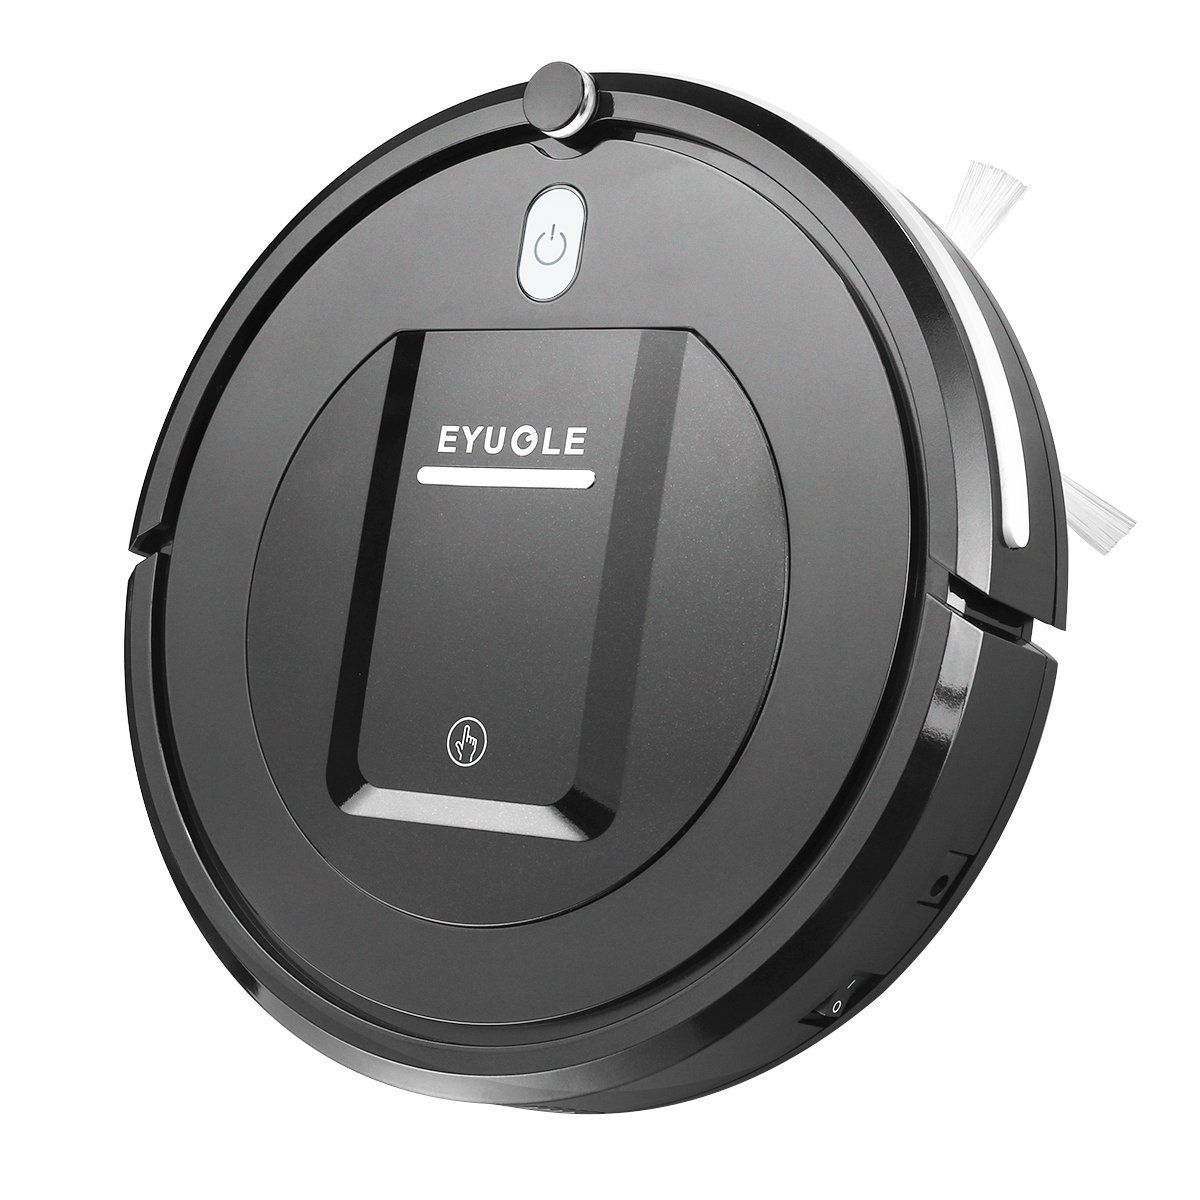 This awesome robot vacuum is under 100! Defineitly adding